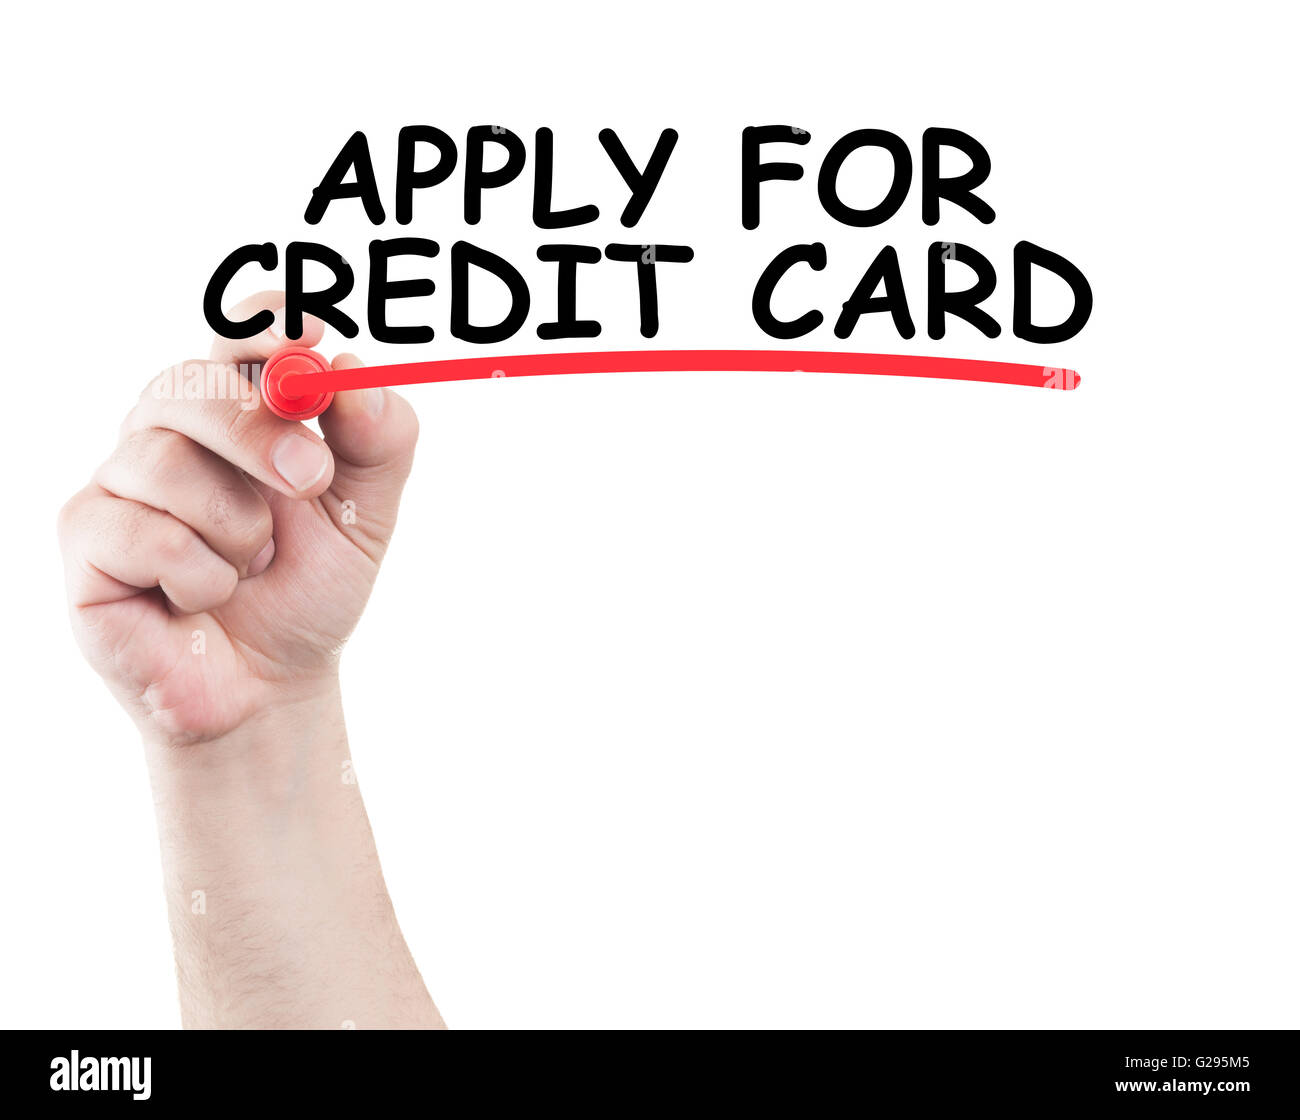 Apply for credit card concept made on transparent wipe board with a hand holding a marker - Stock Image